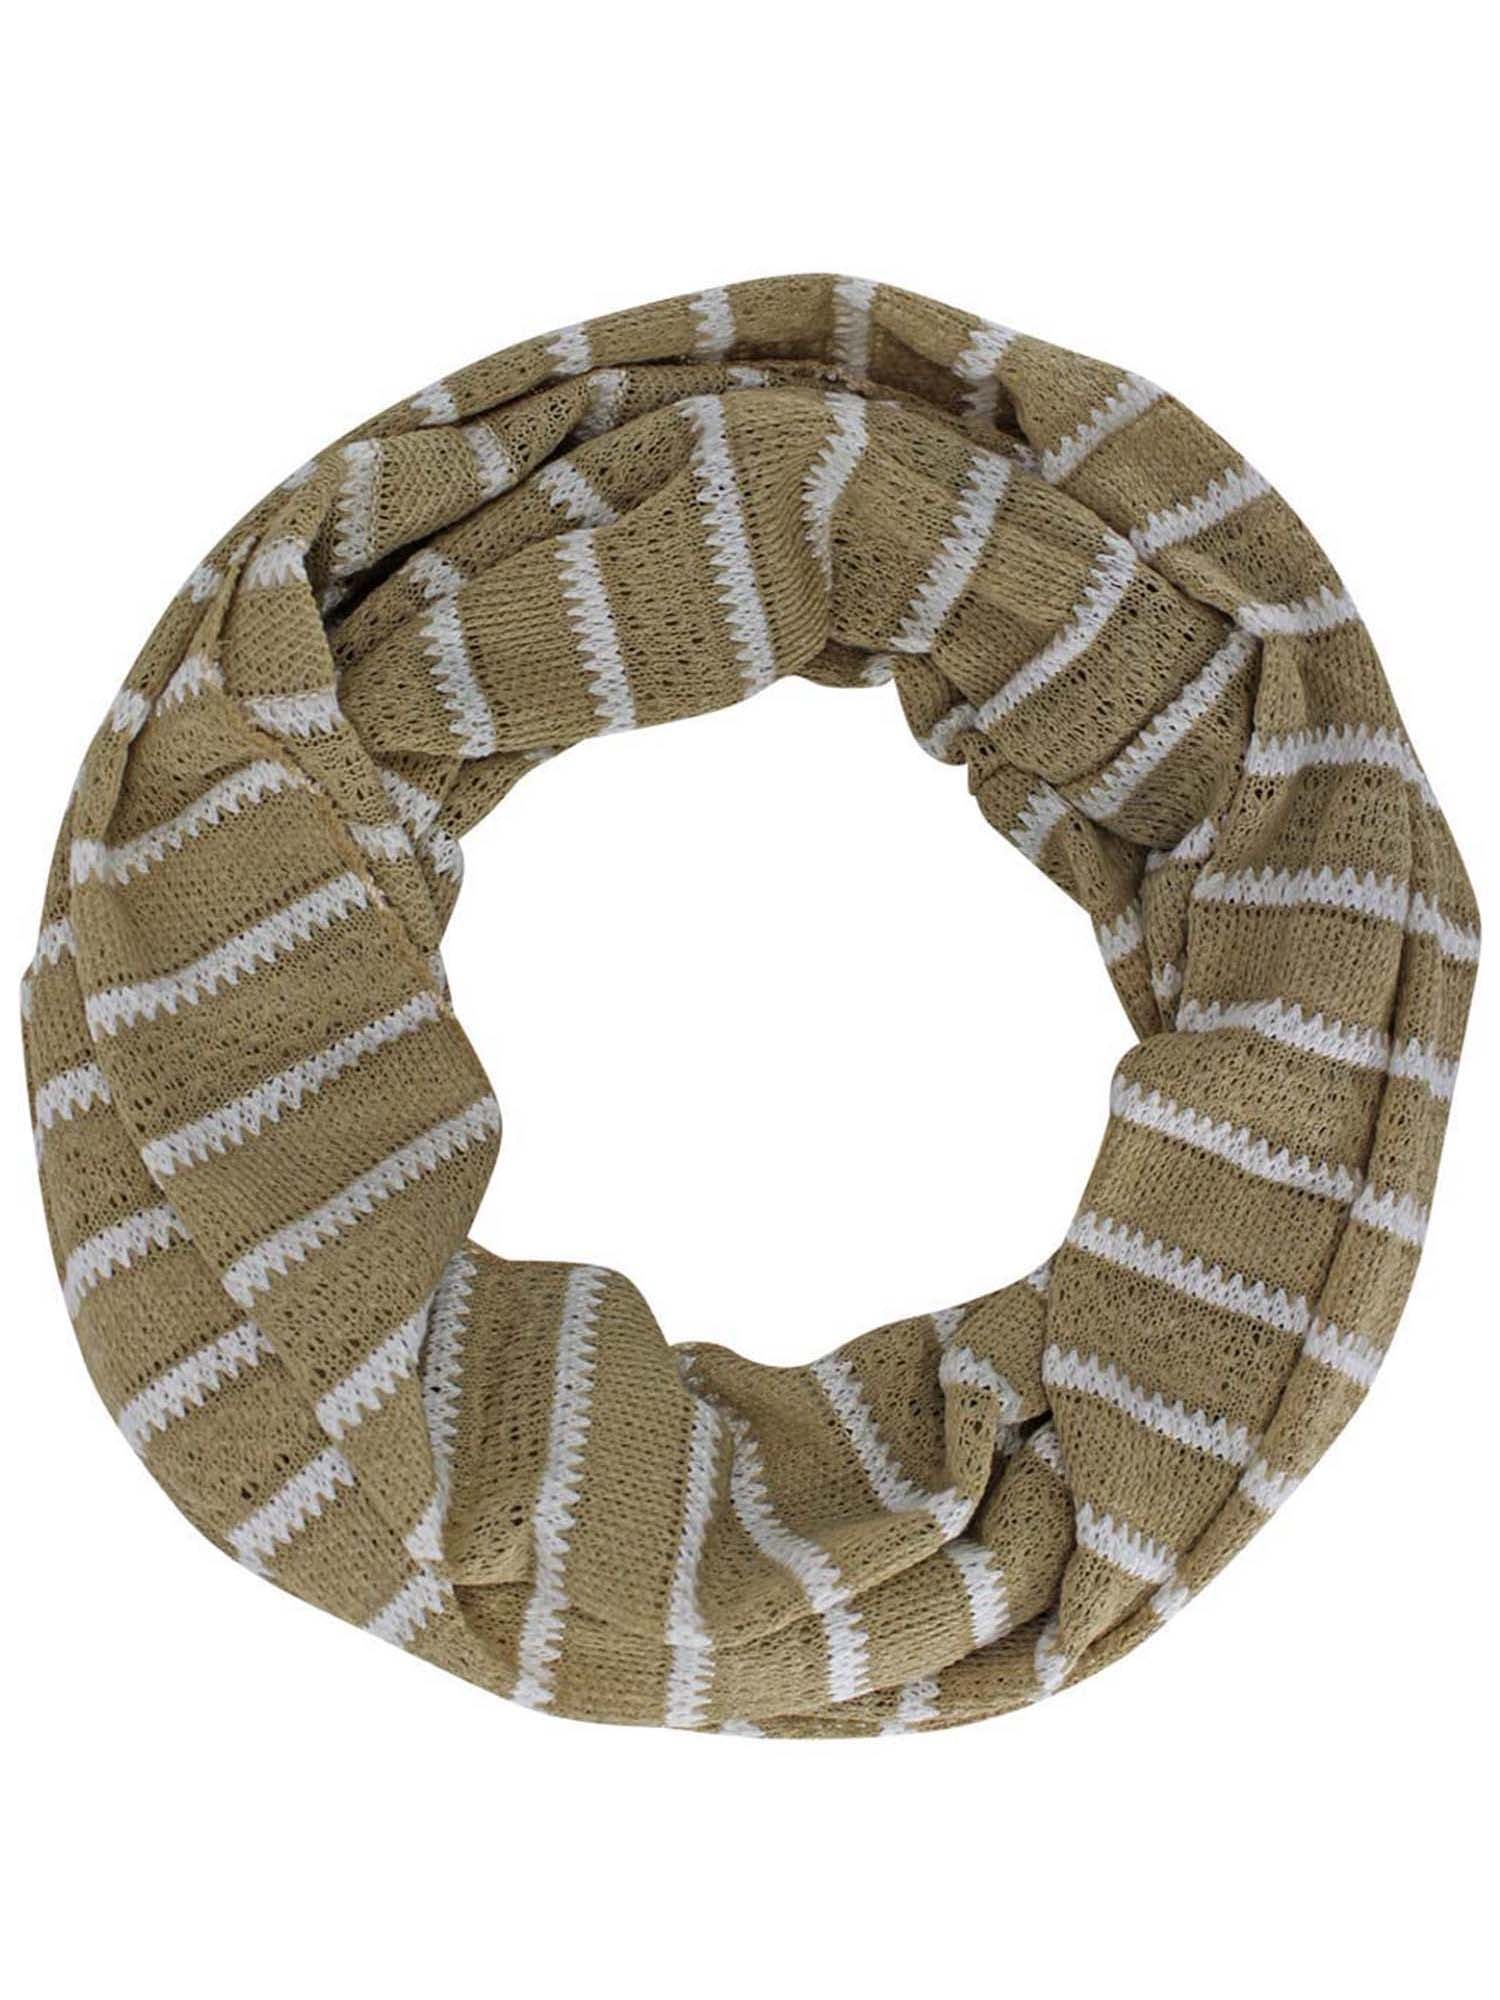 Striped Cotton Knit Lightweight Circle Infinity Scarf